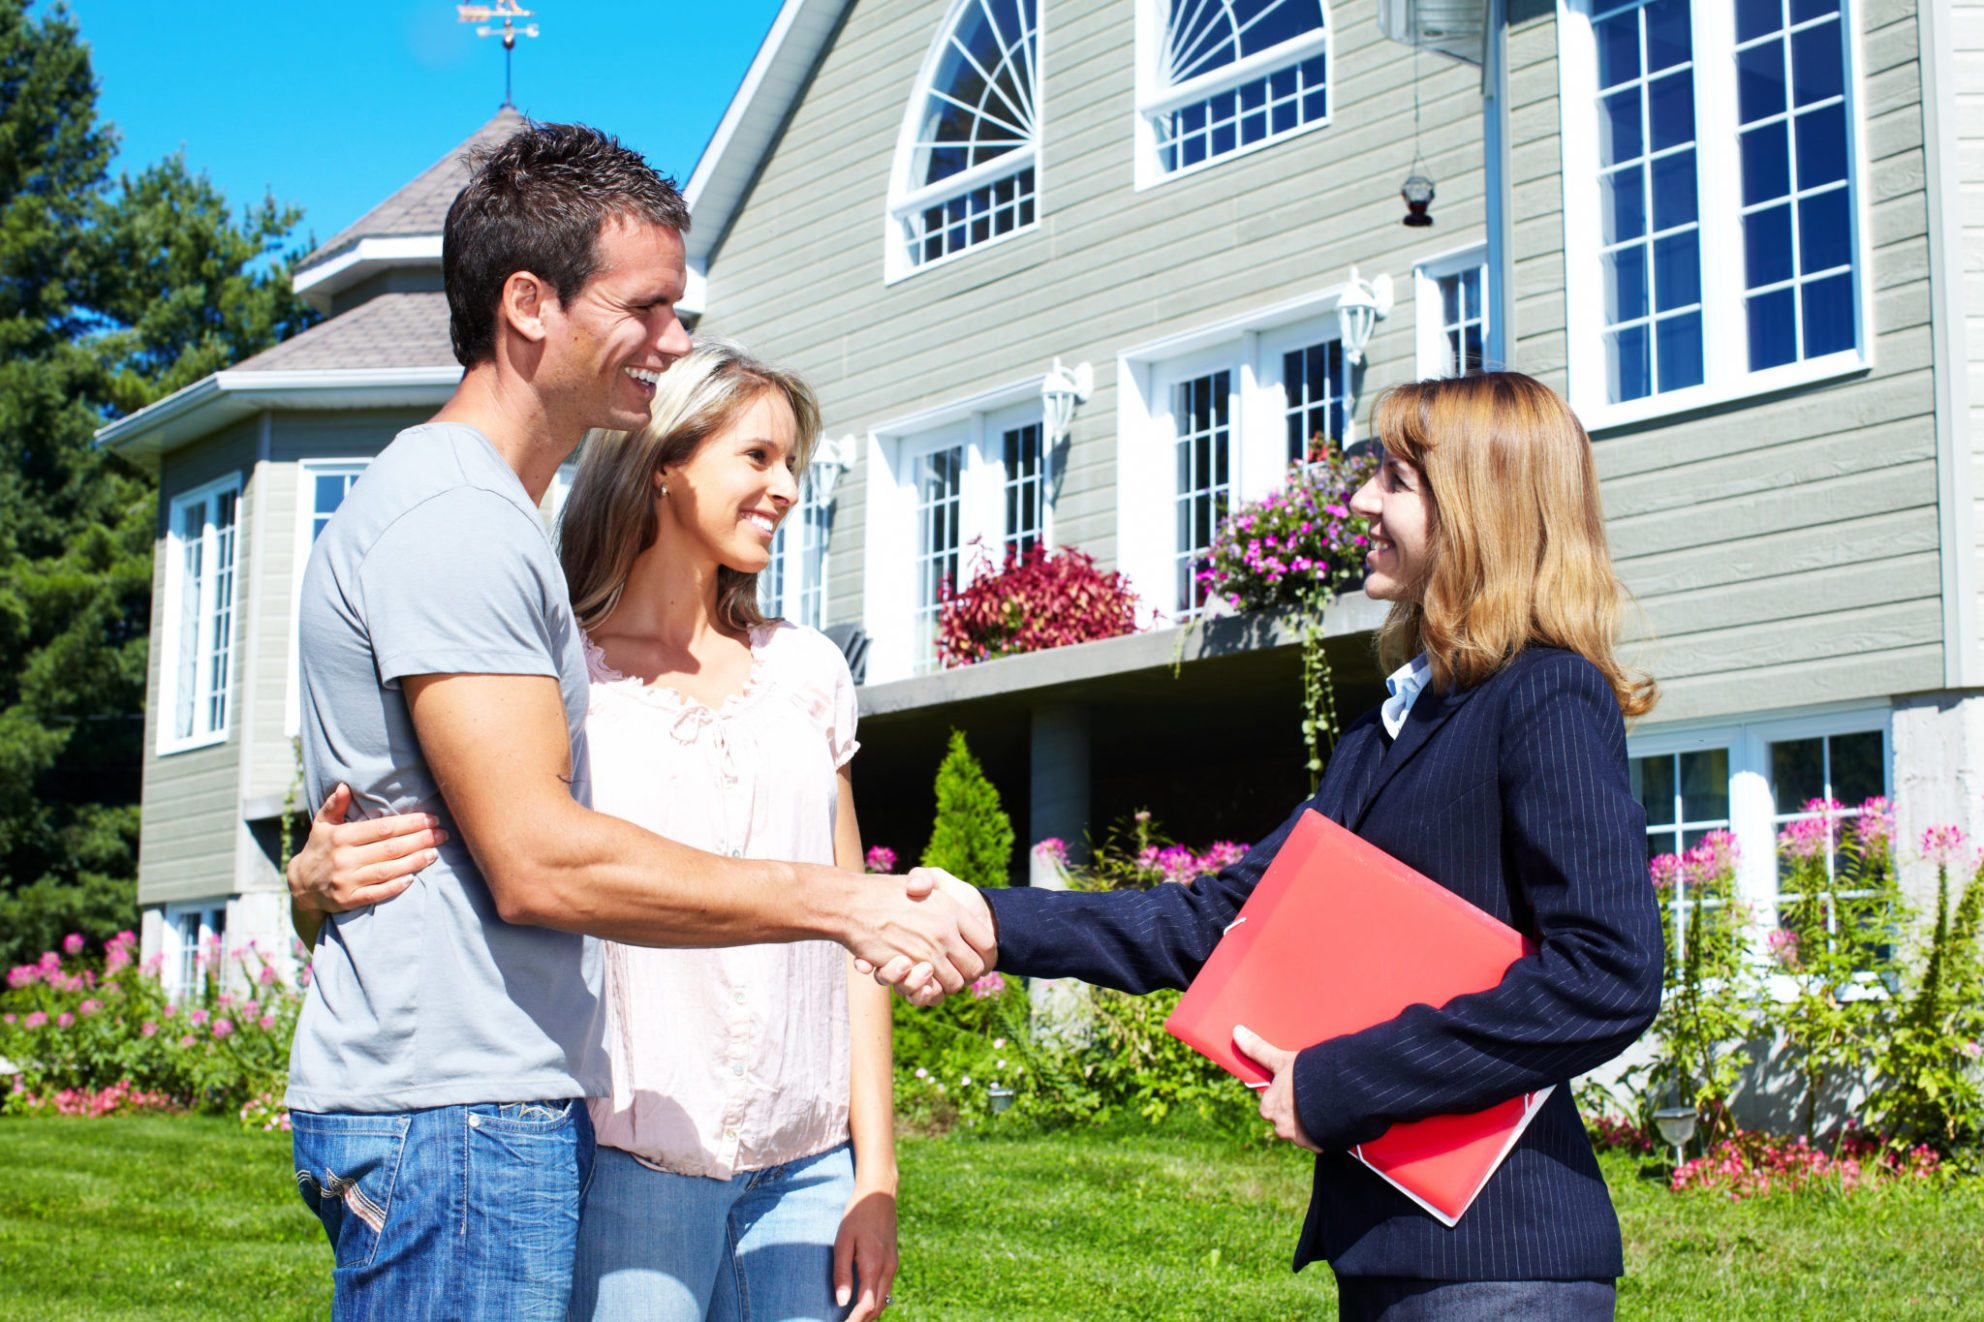 Neighborhood expertise is what real estate consumers are really looking for